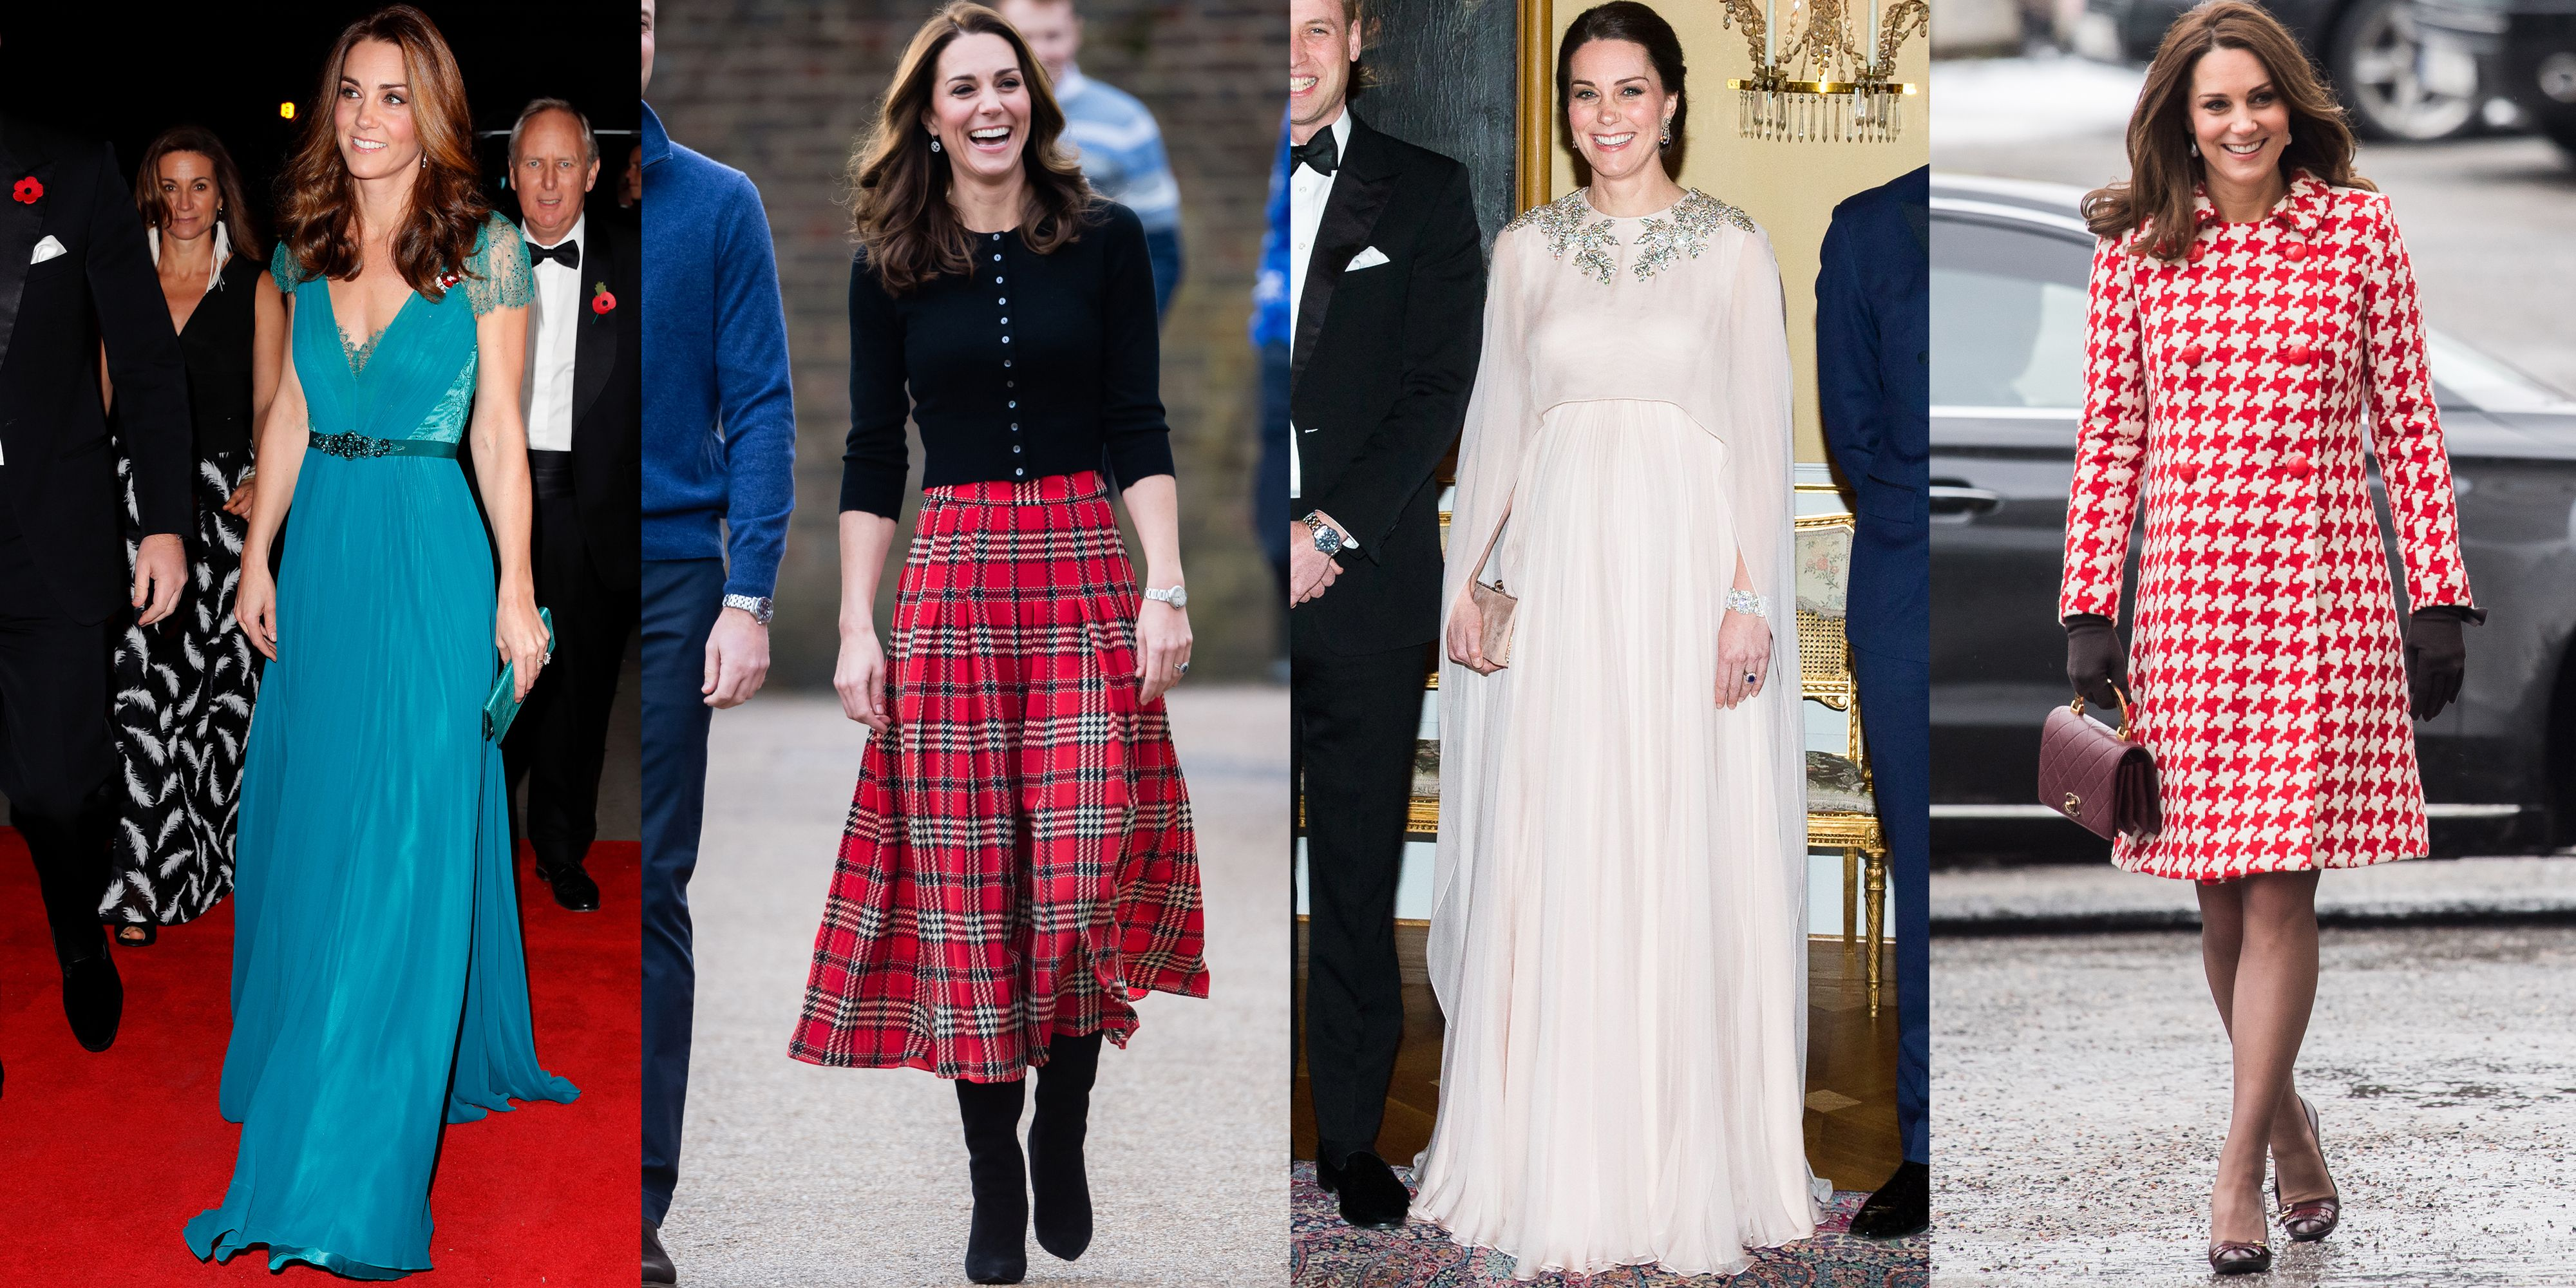 The Year in Kate Middleton: The Duchess' Best Looks of 2018